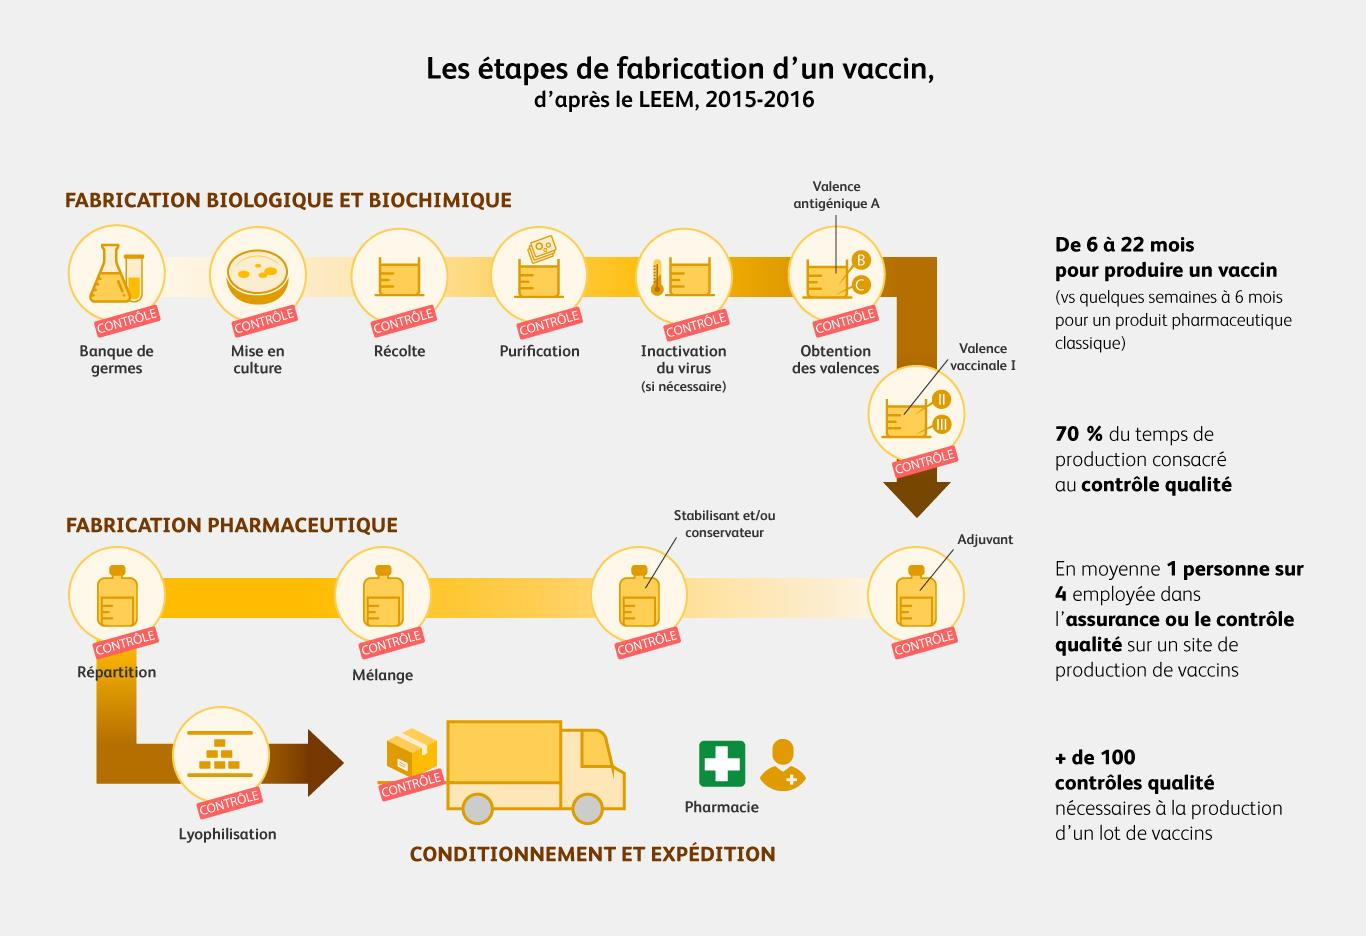 Cycle de production d'un vaccin d'après le LEEM